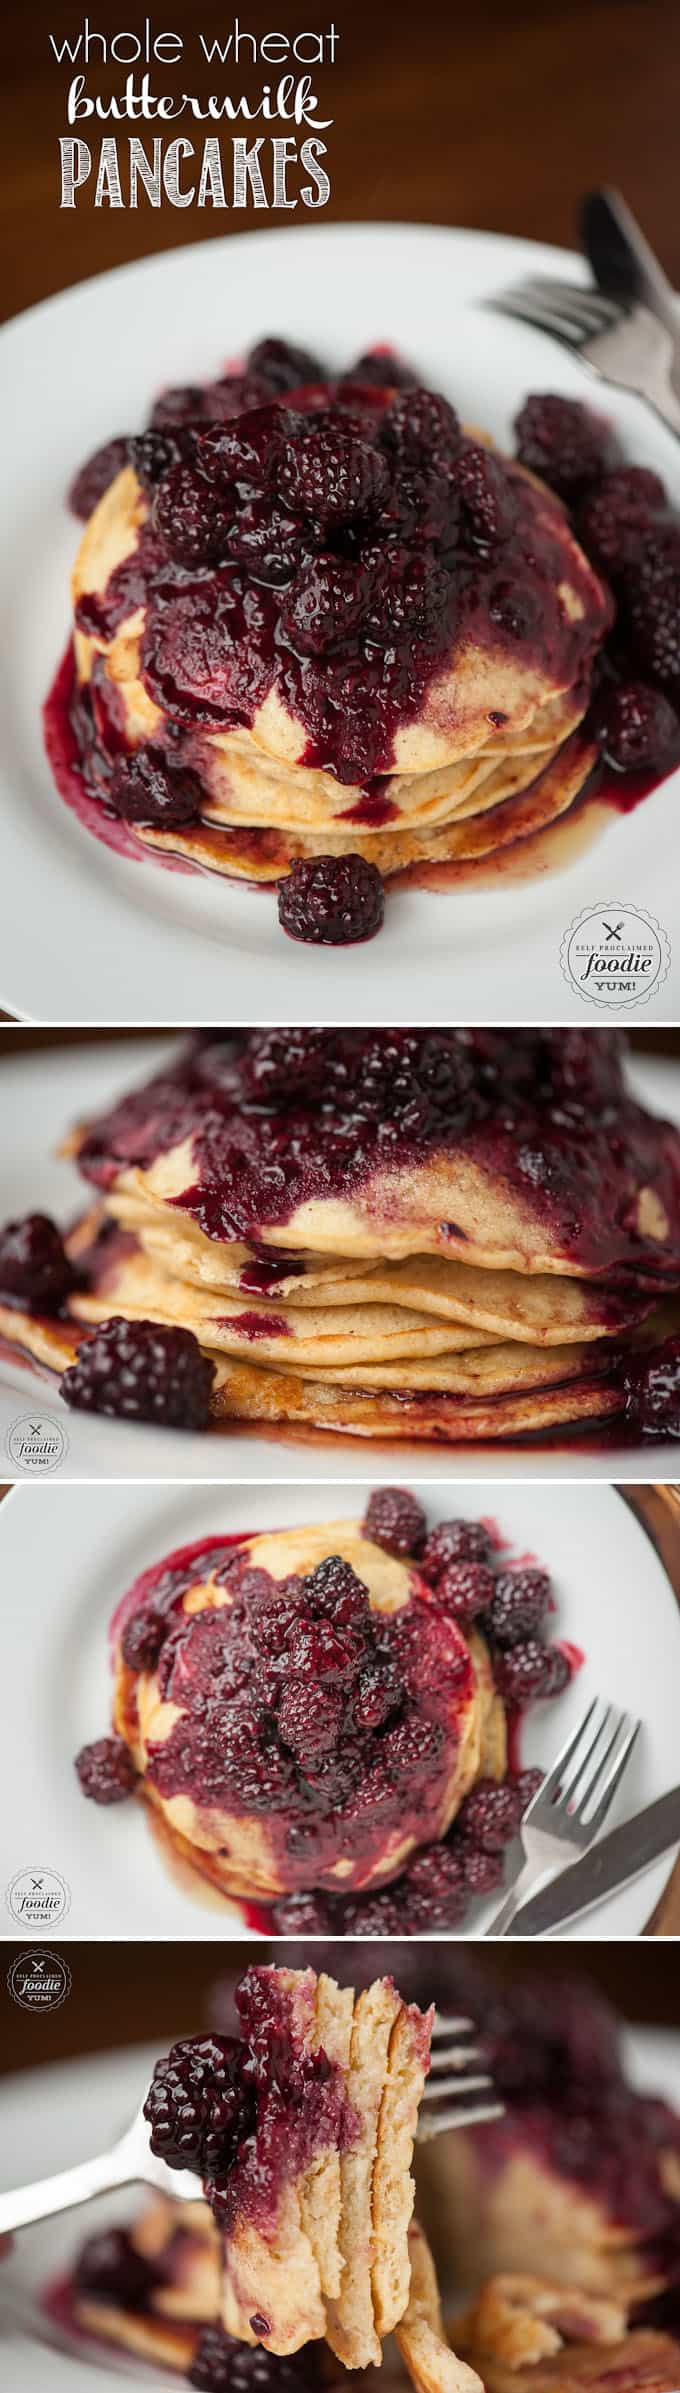 homemade wheat pancakes with berries